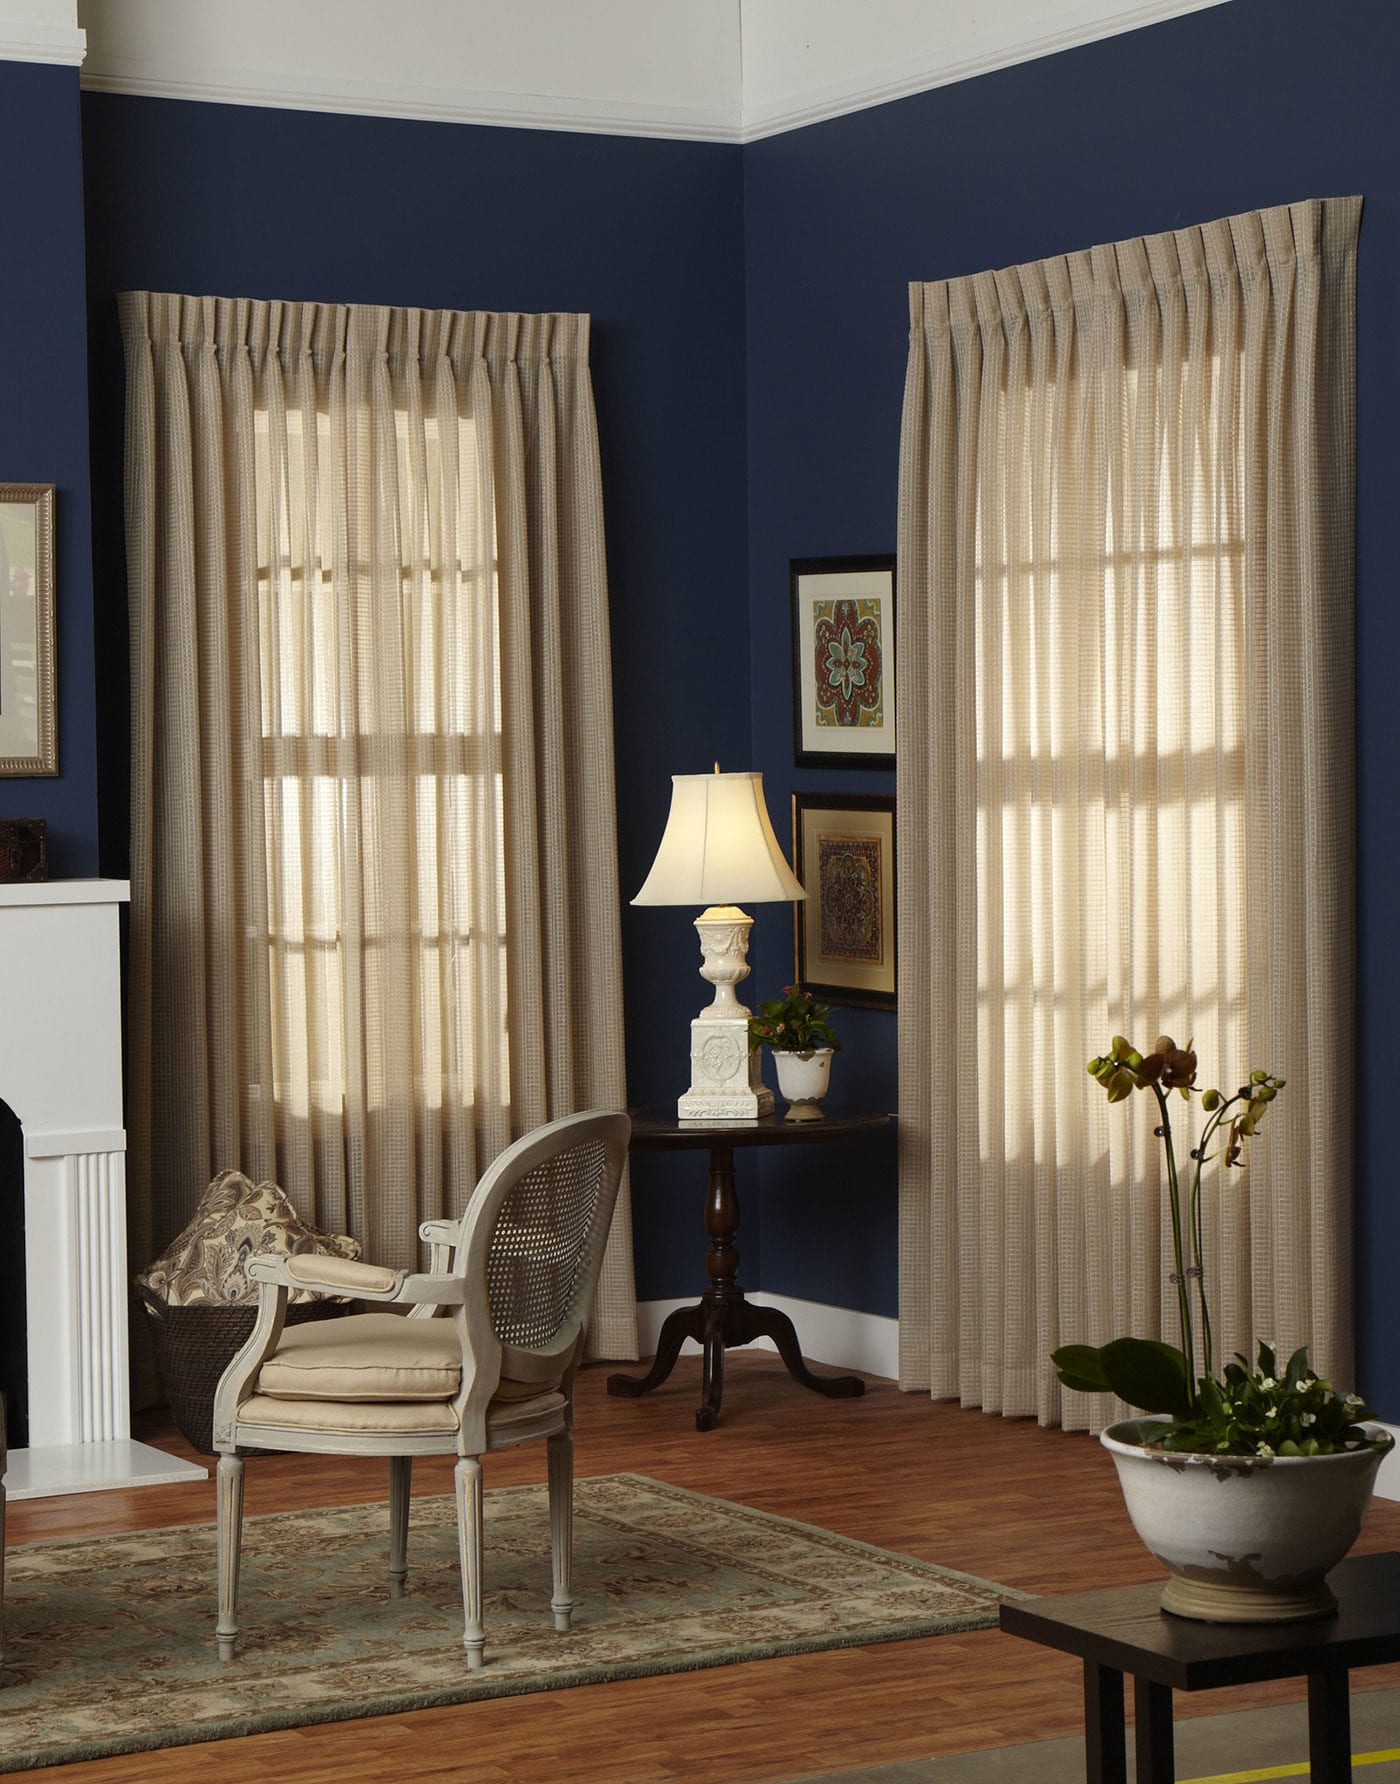 Panel Pinch Pleat Fabric Sheer Window Treatments Curtains Drapes Draperies Blinds Horizon Living Room